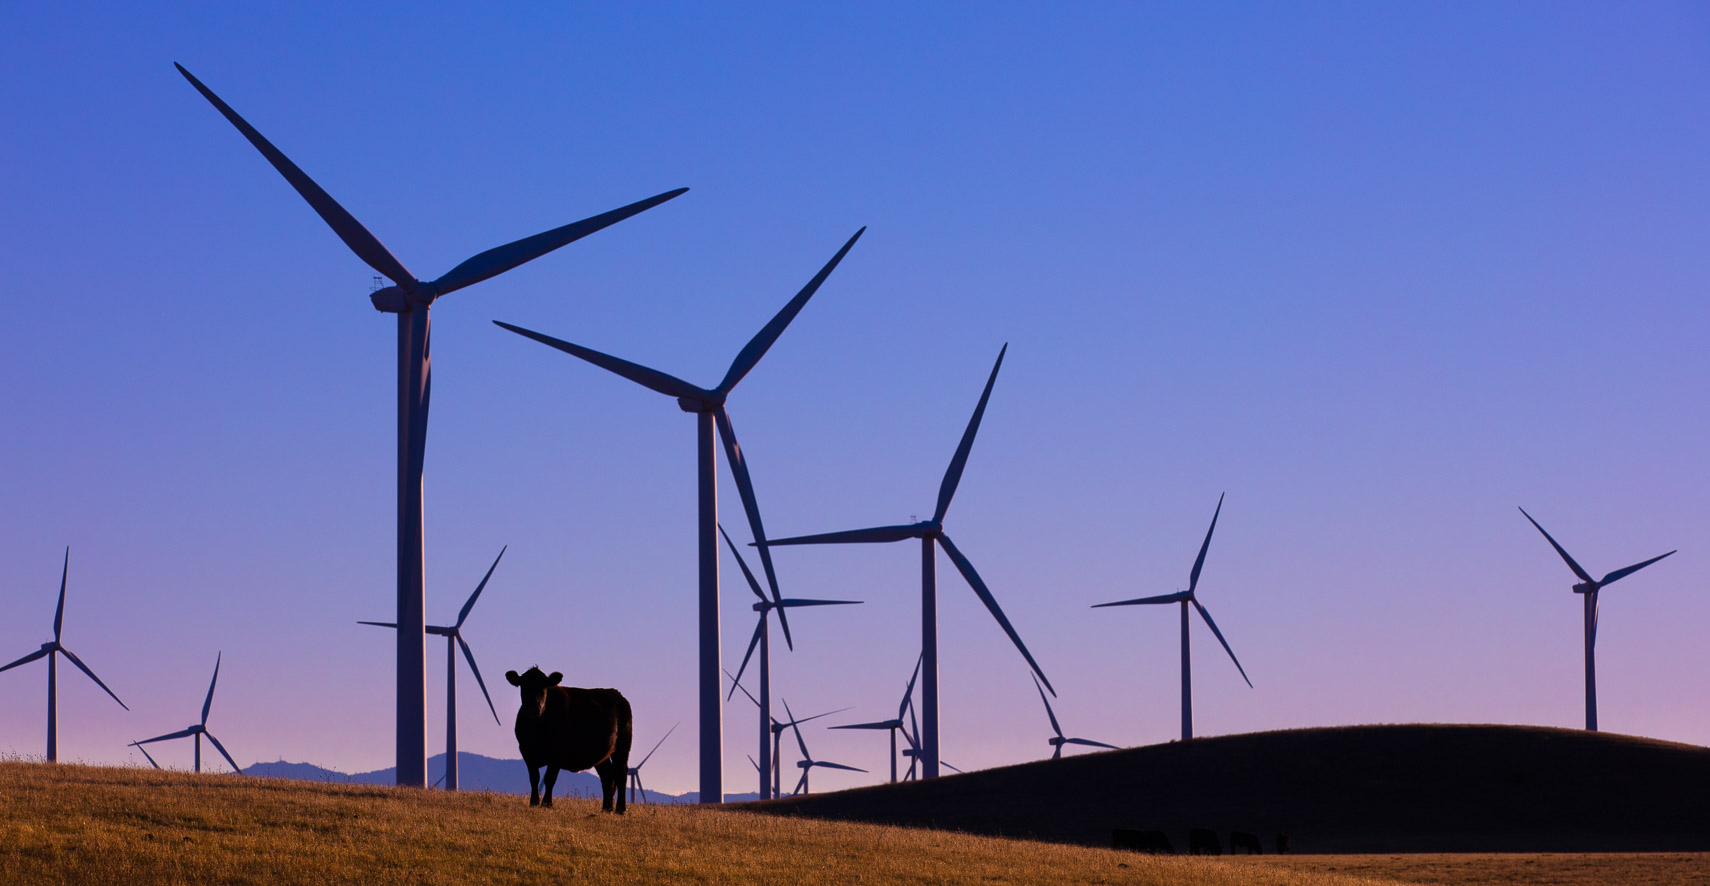 Wind Turbines and a Cow